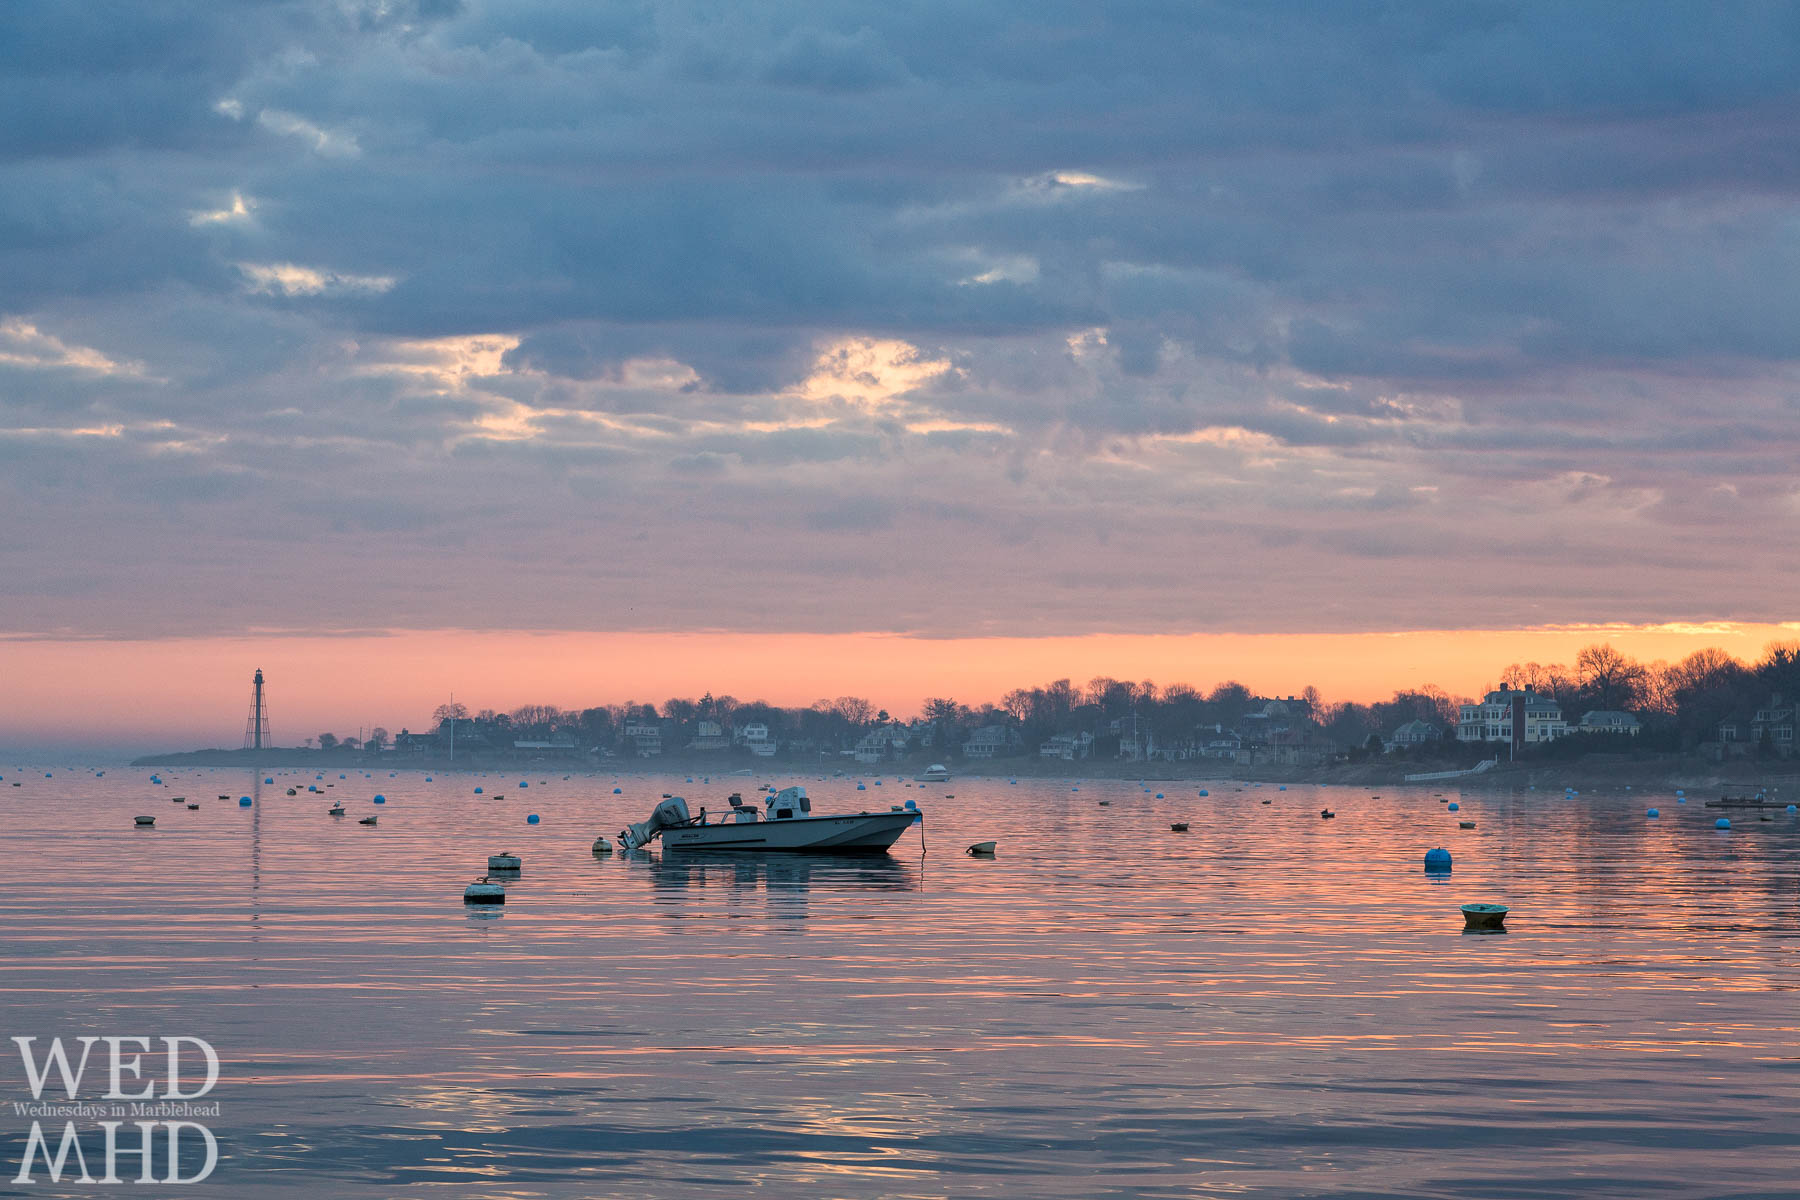 A lone Whaler moored in Marblehead Harbor and captured on a spring dawn with fog hovering over the water